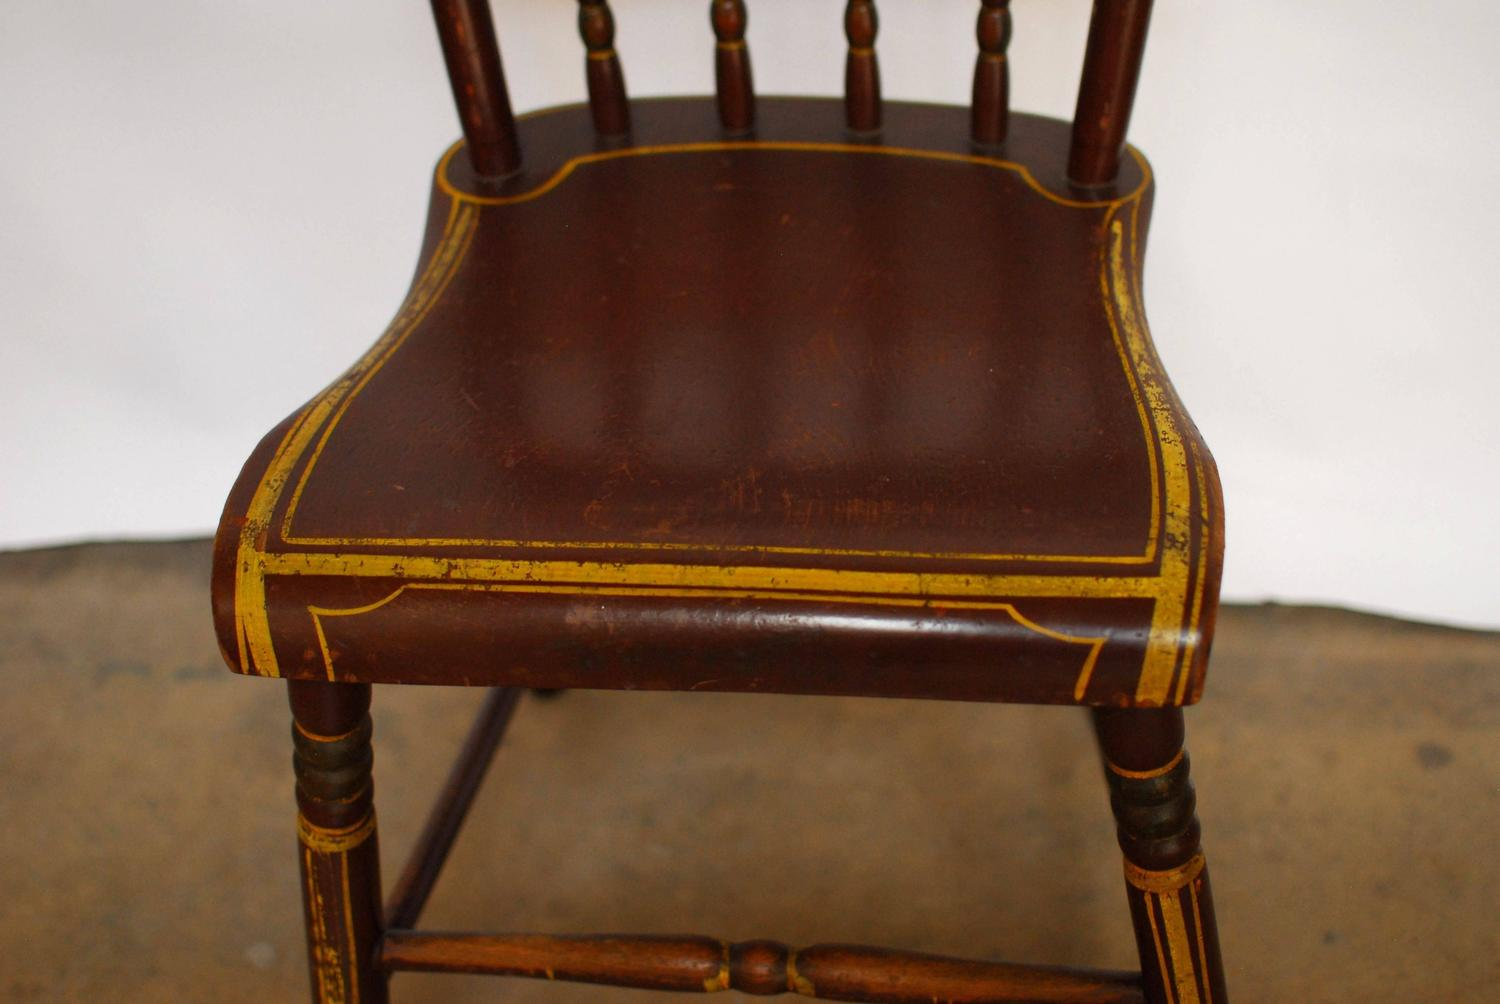 dating hitchcock furniture Trace the history of the hitchcock chair, a popular early 19th century painted, stenciled style including how to authenticate and date original.